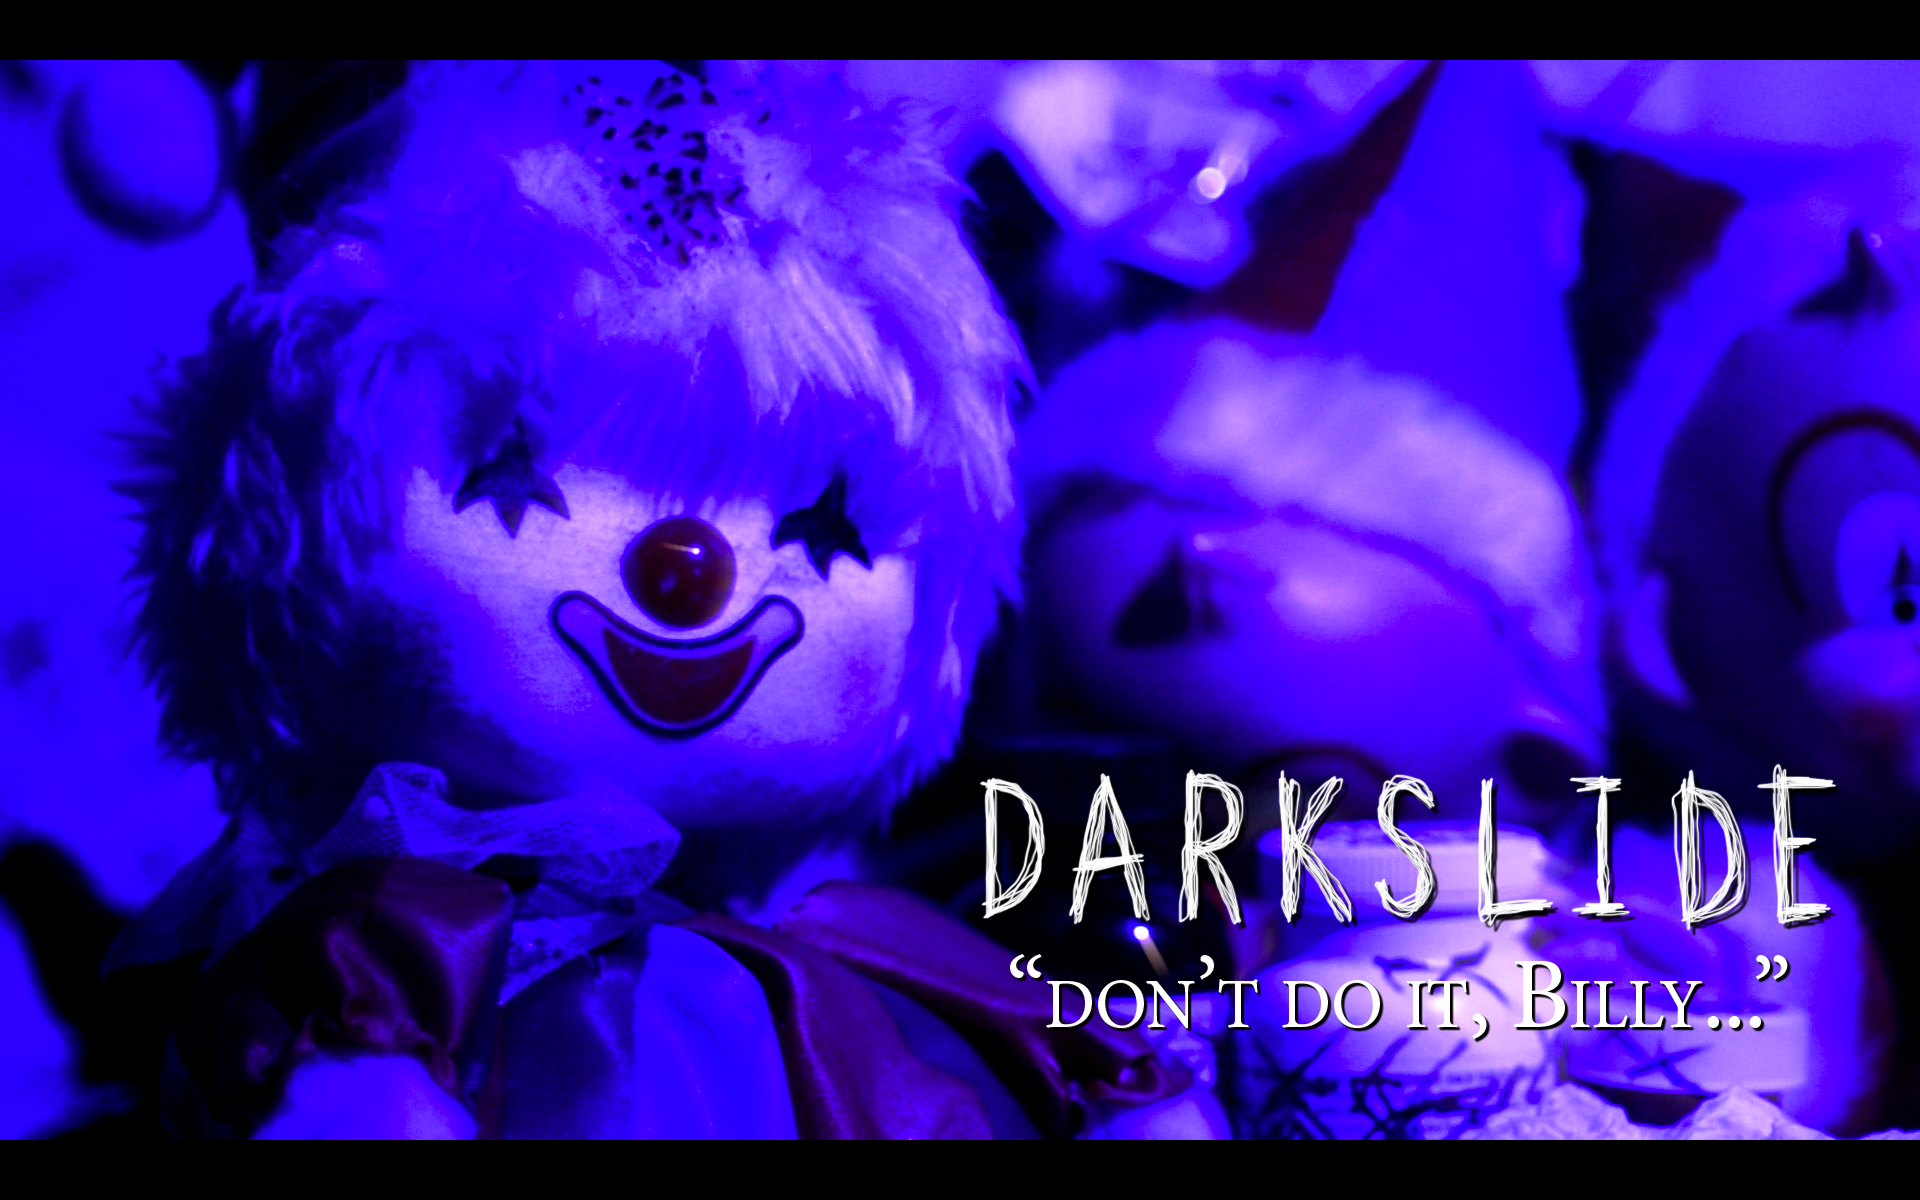 """Don't do it, Billy..."" - a promotional image for DARKSLIDE"